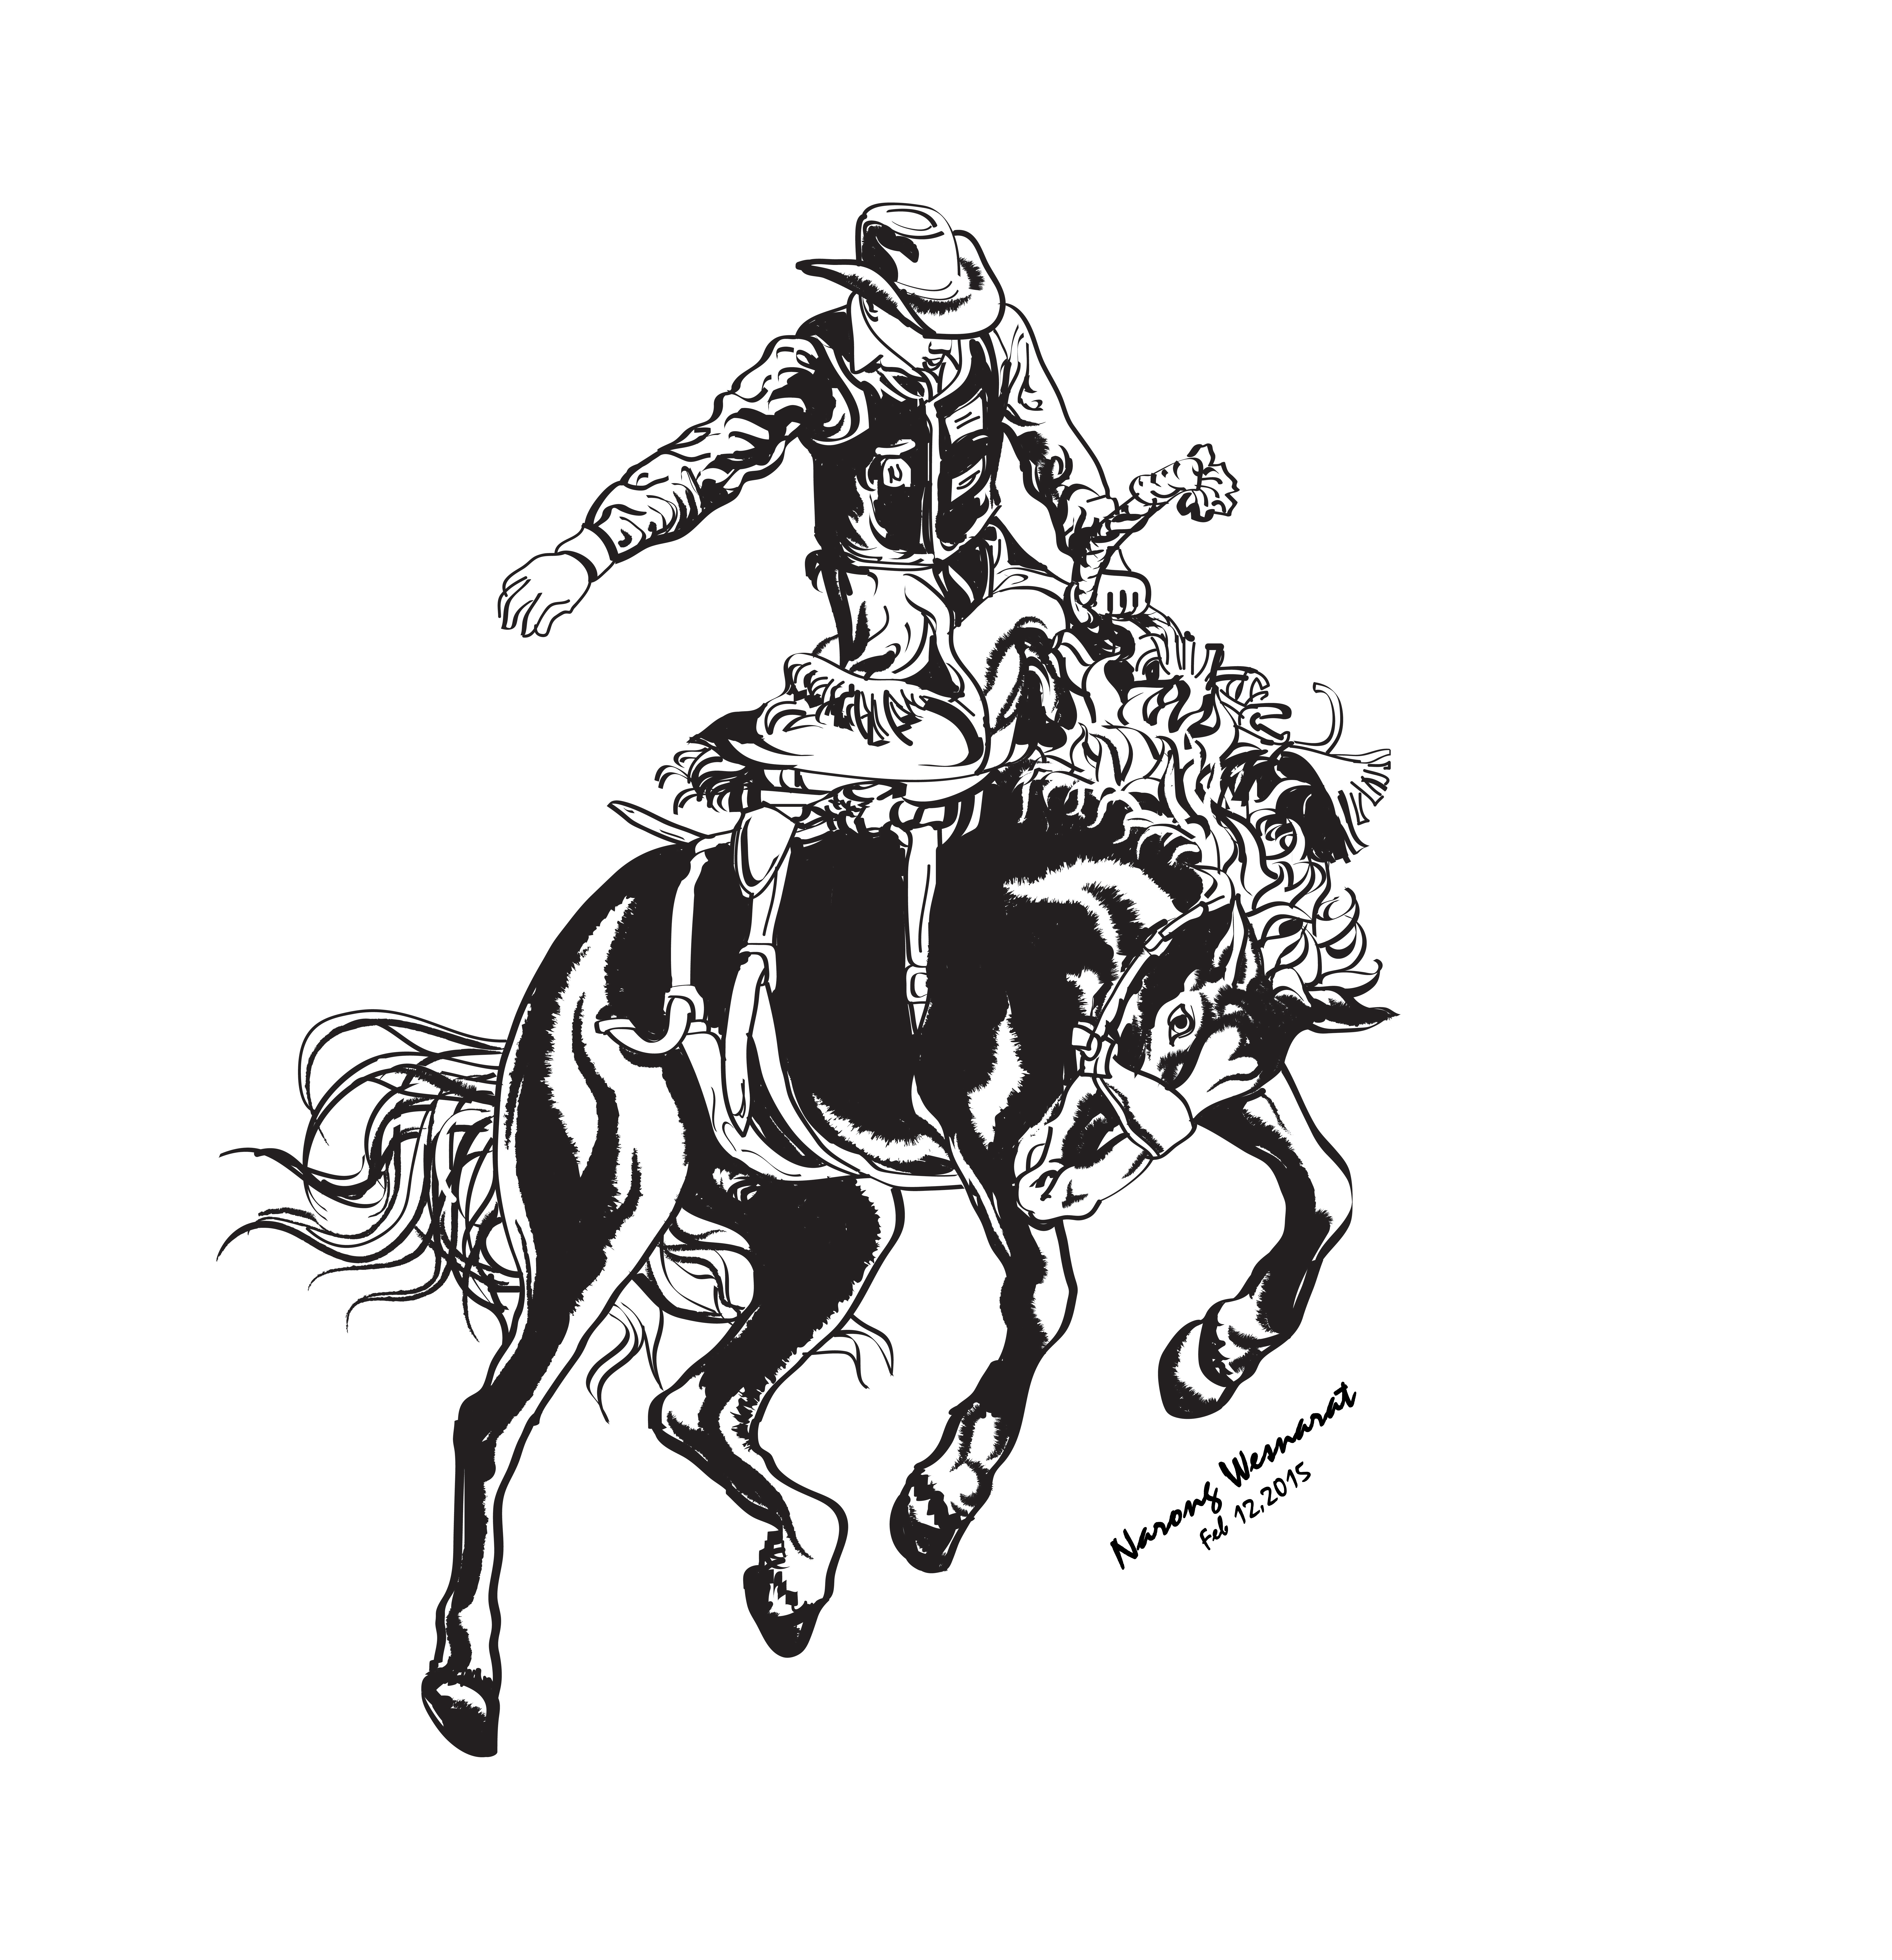 3 SaddleBronc B&W 2015 1a